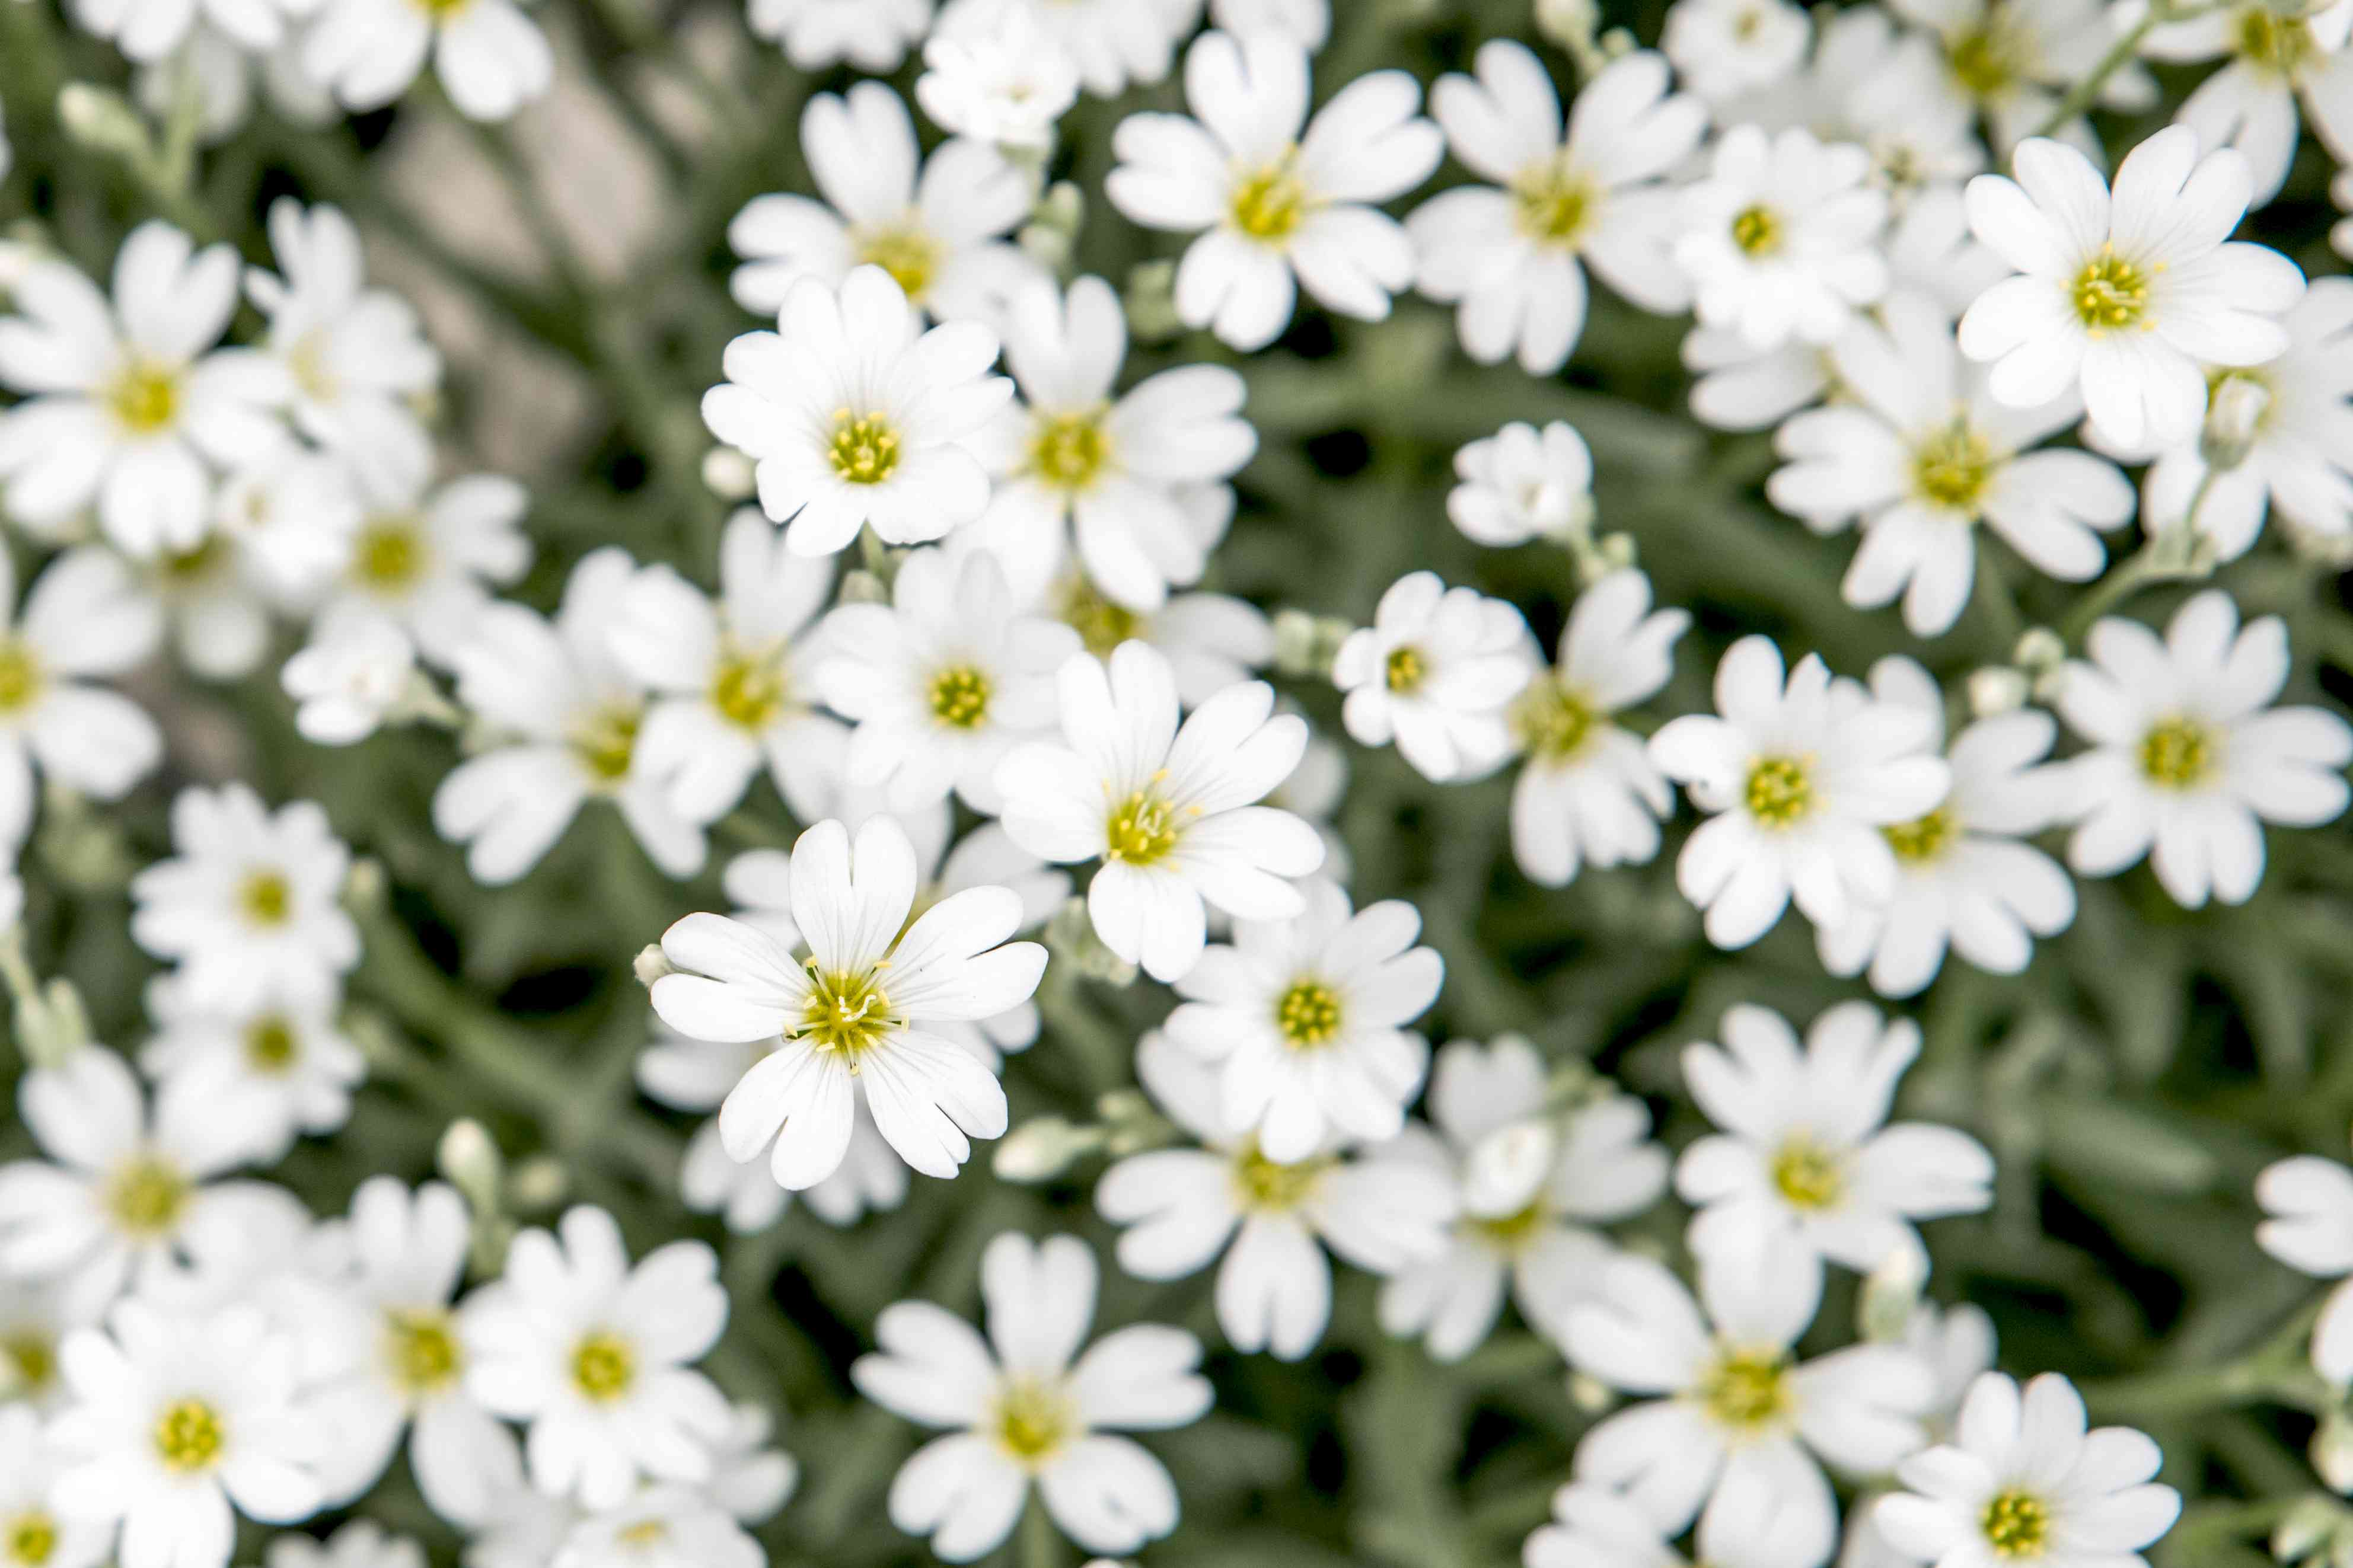 Mid-season white flowers clustered together with tiny yellow centers closeup